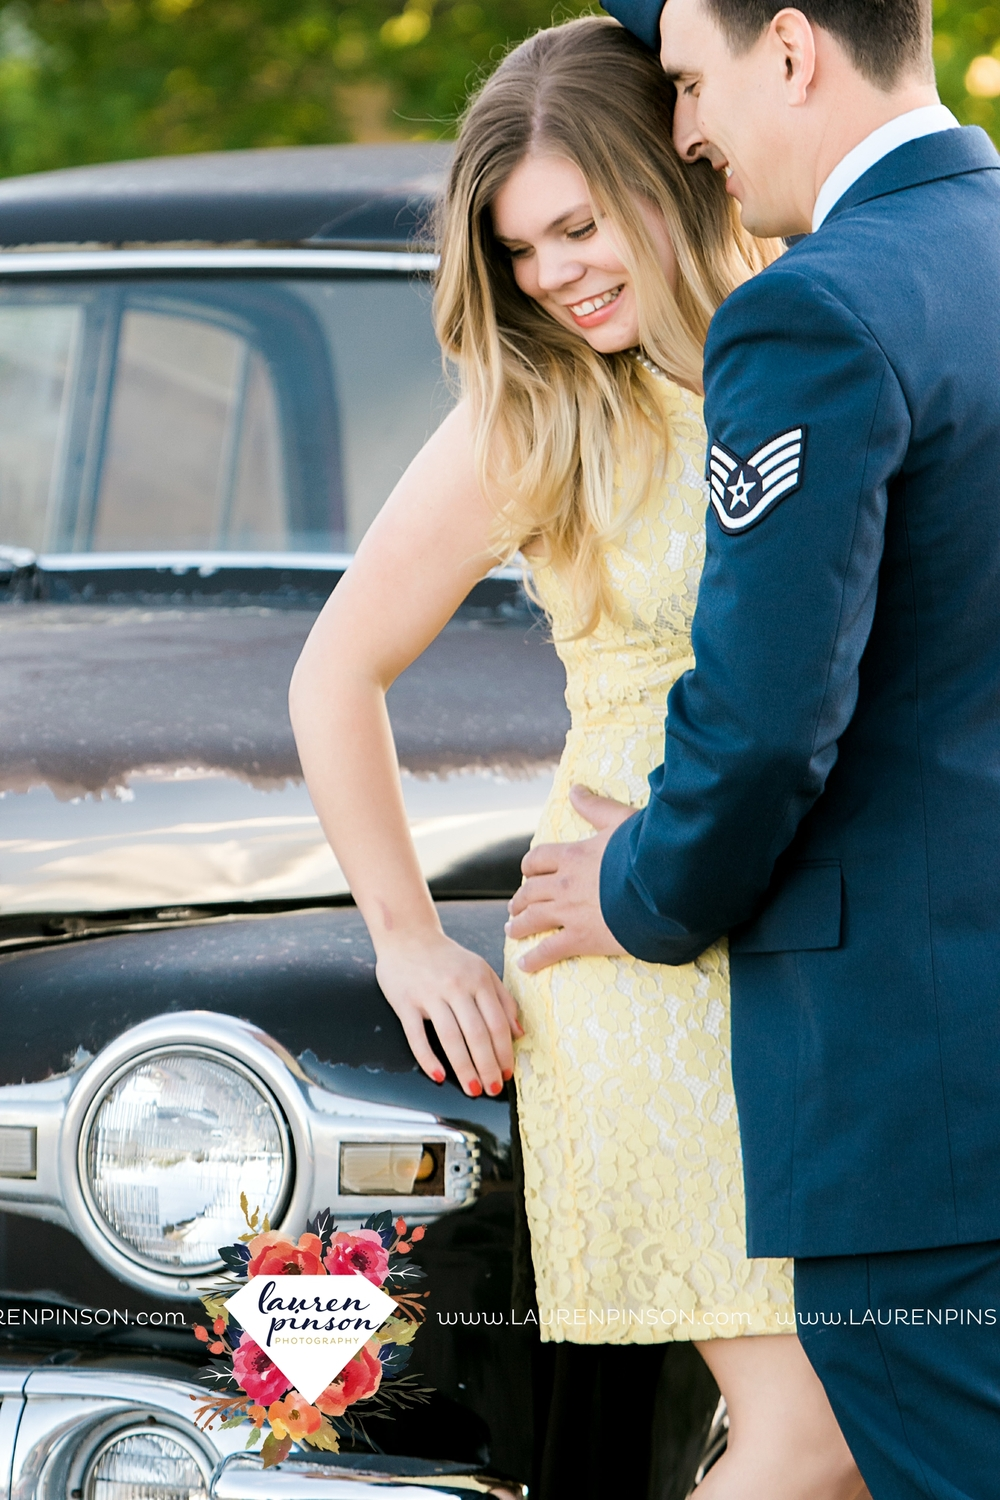 wichita-falls-texas-wedding-engagement-photographer-natural-soft-timeless-elegant-engaged-couples-sheppard-afb-classic-car-vintage-photographer_2372.jpg